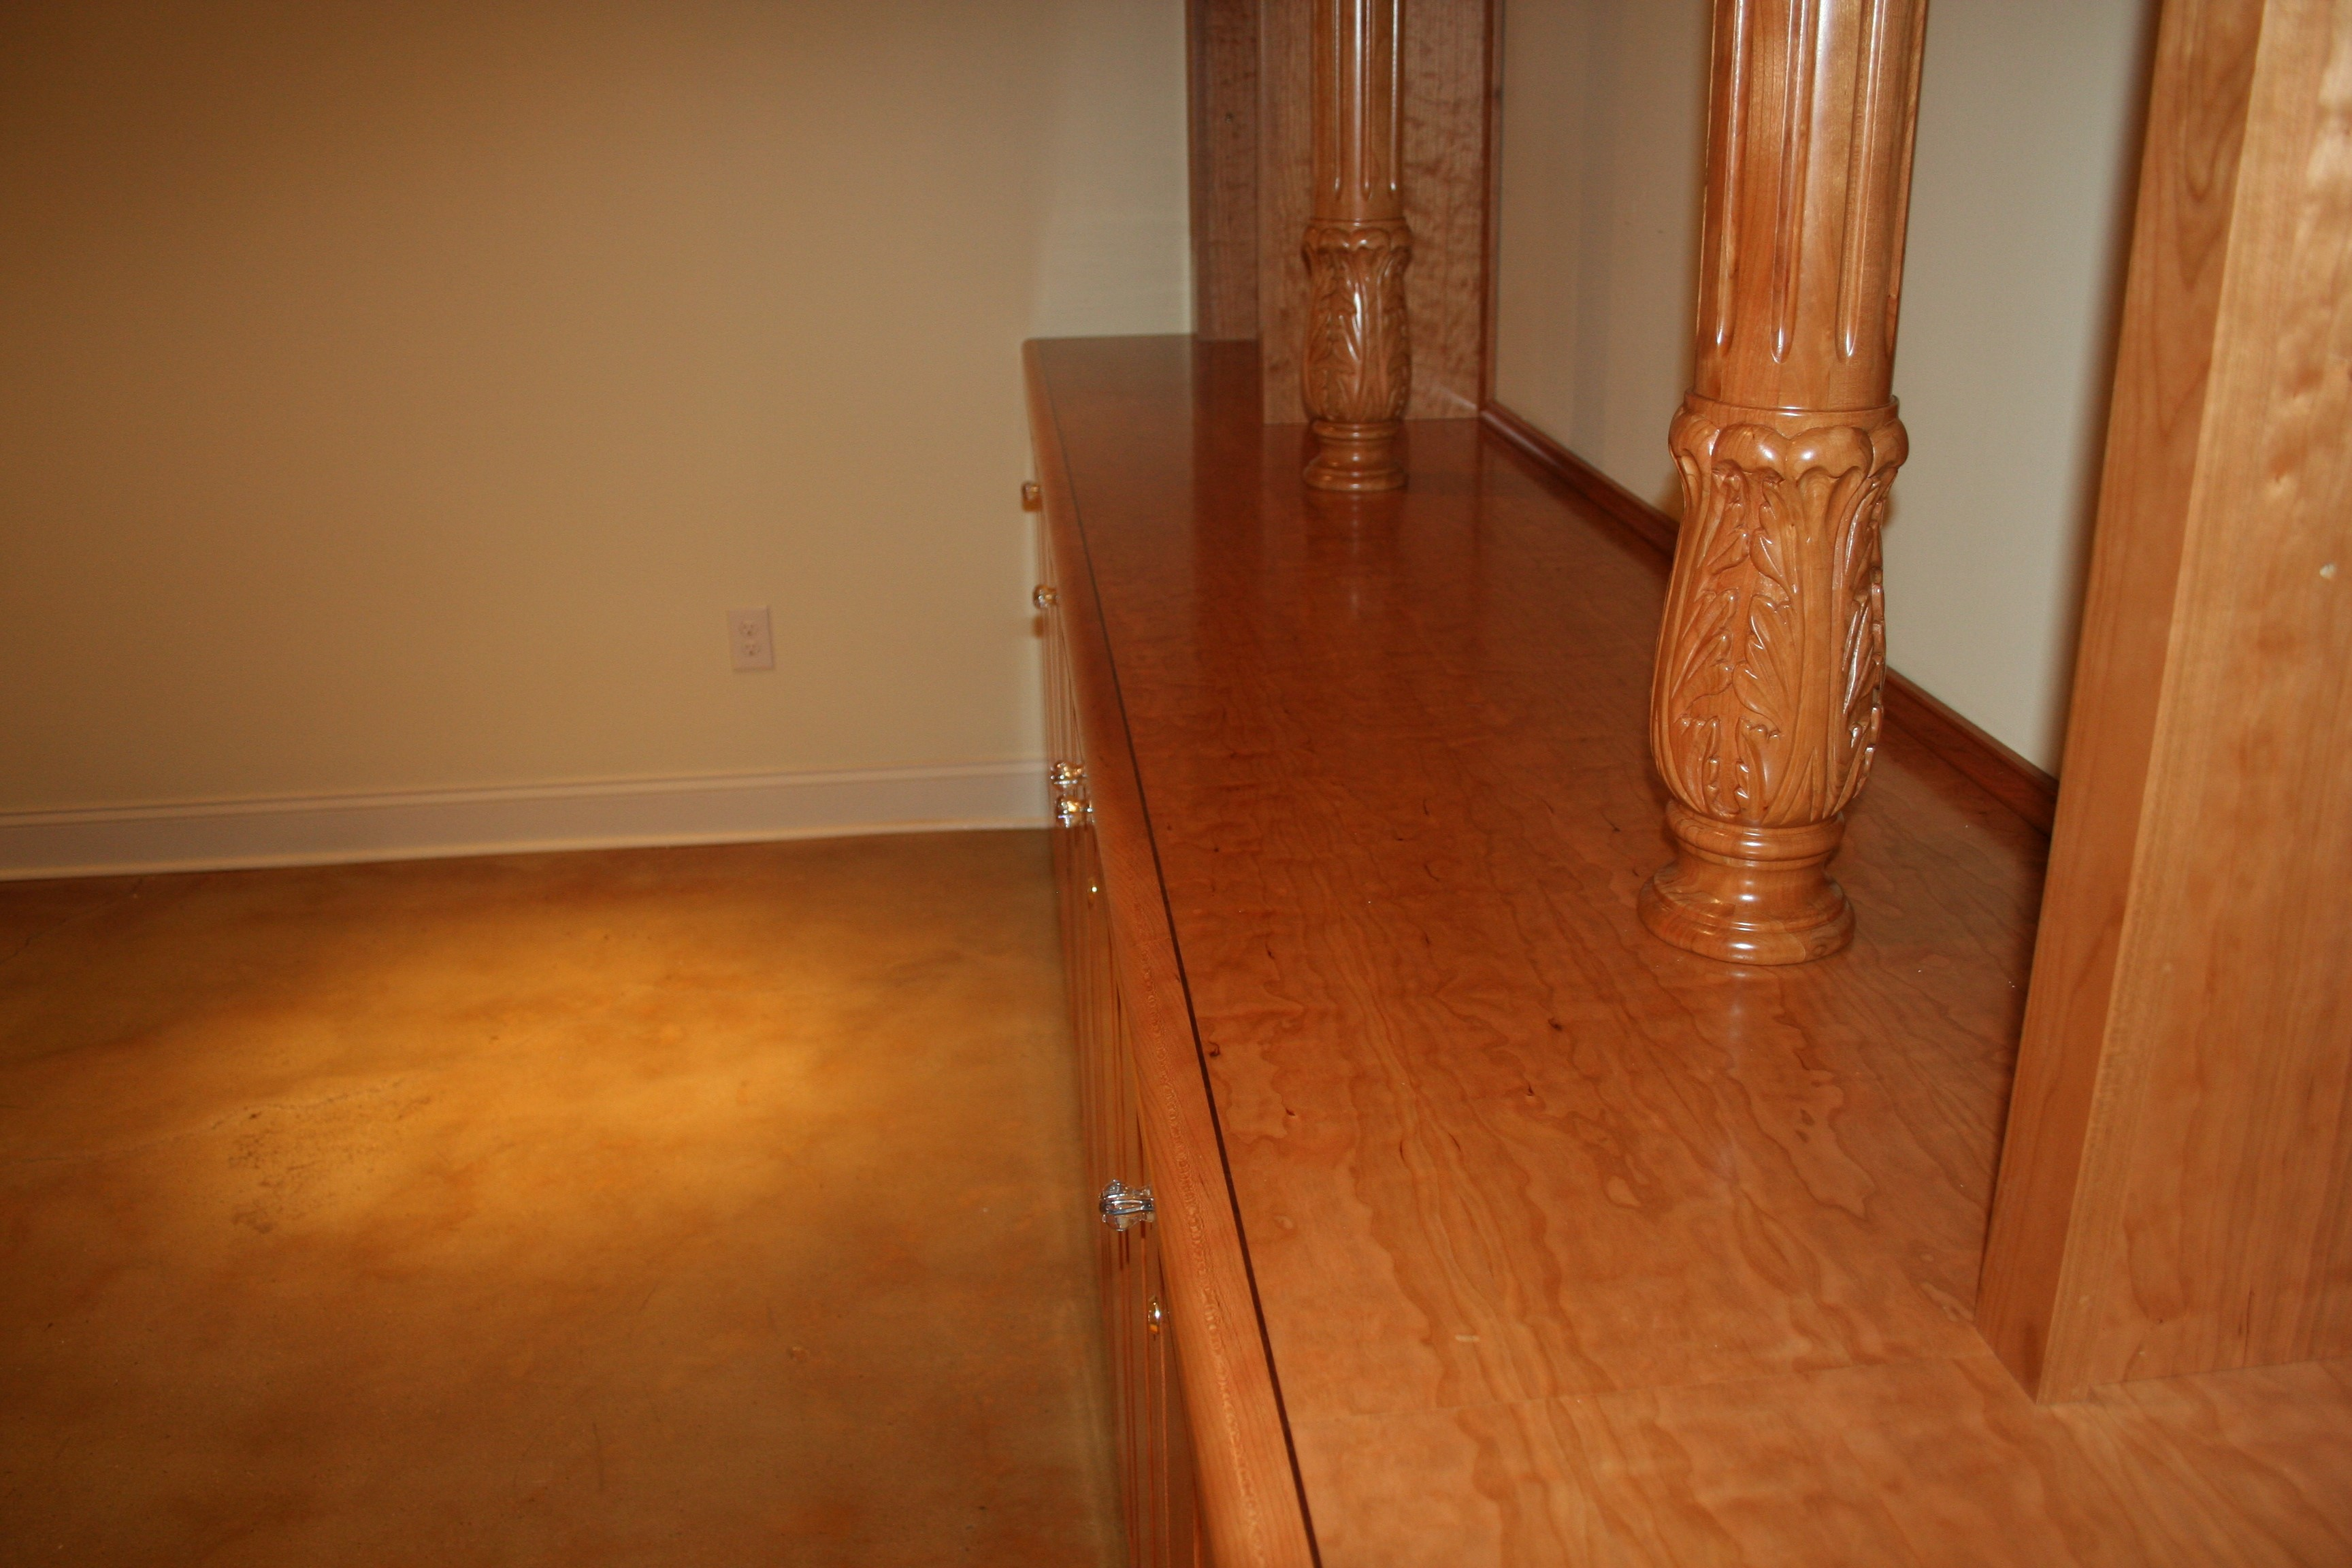 Wooden counter top